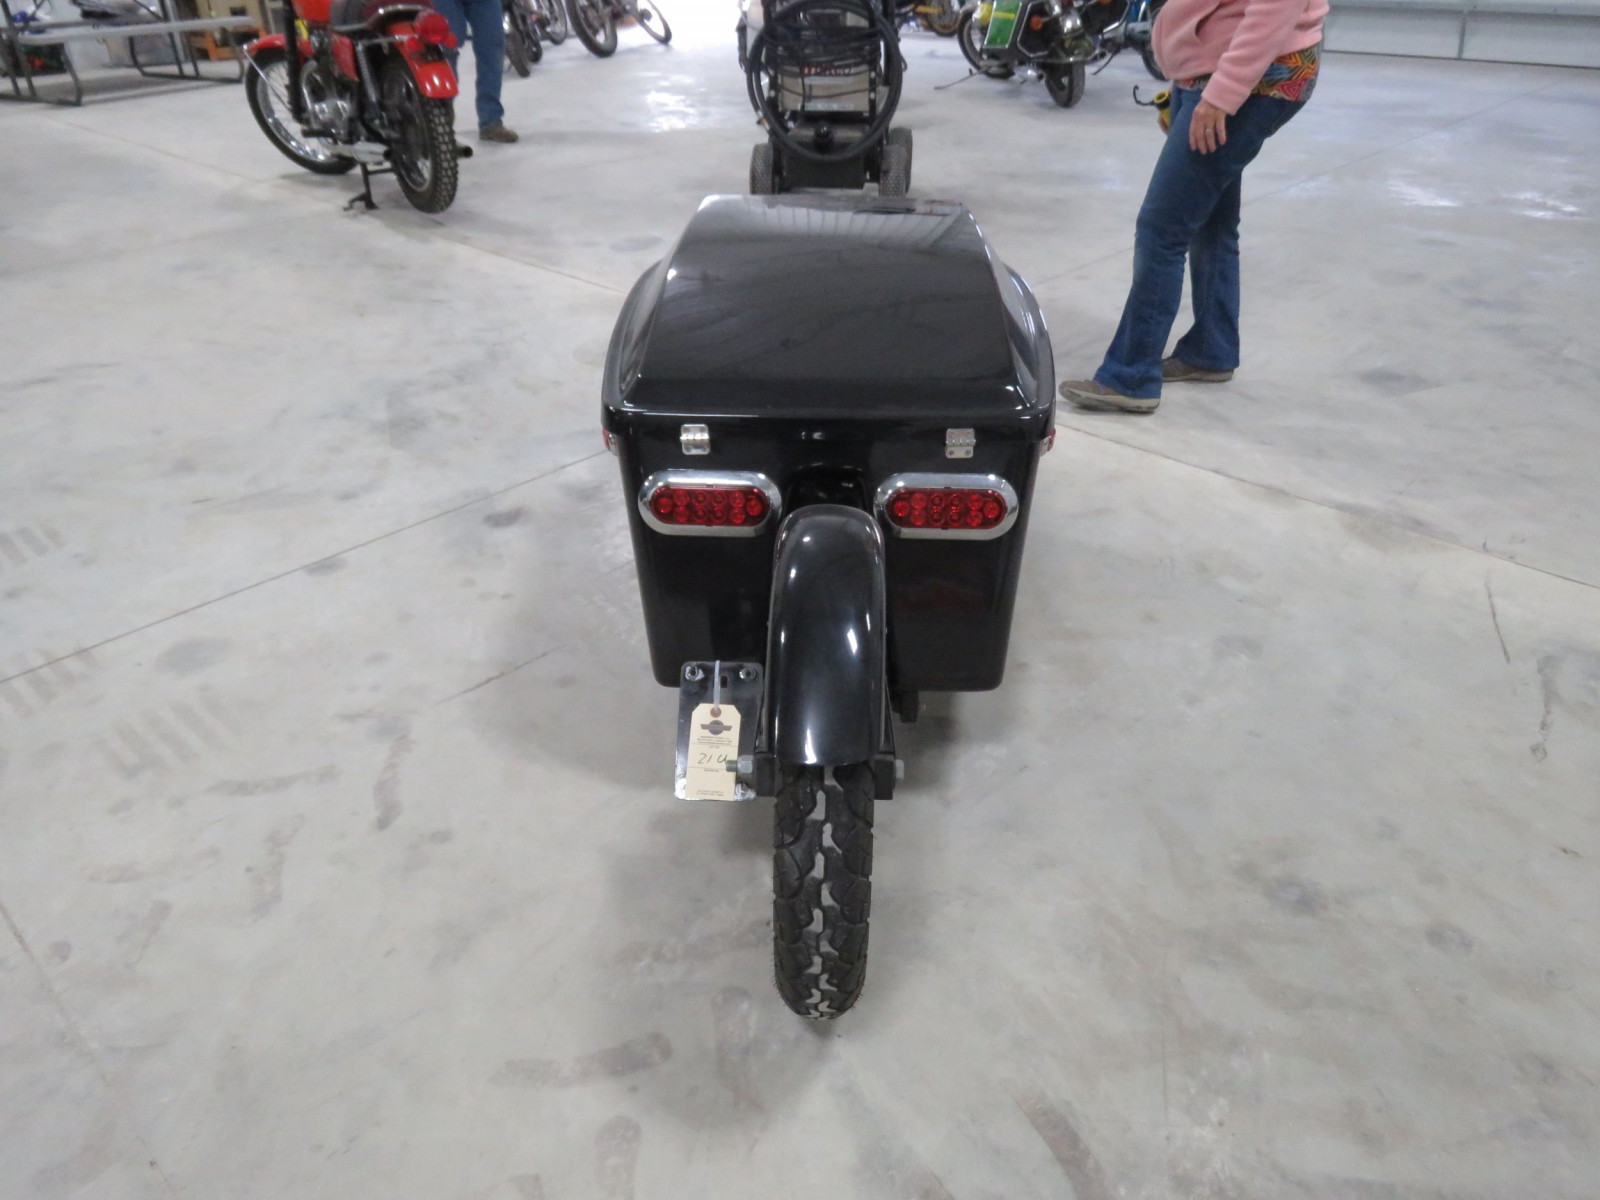 2009 Nline Motorcycle Trailer - Image 3